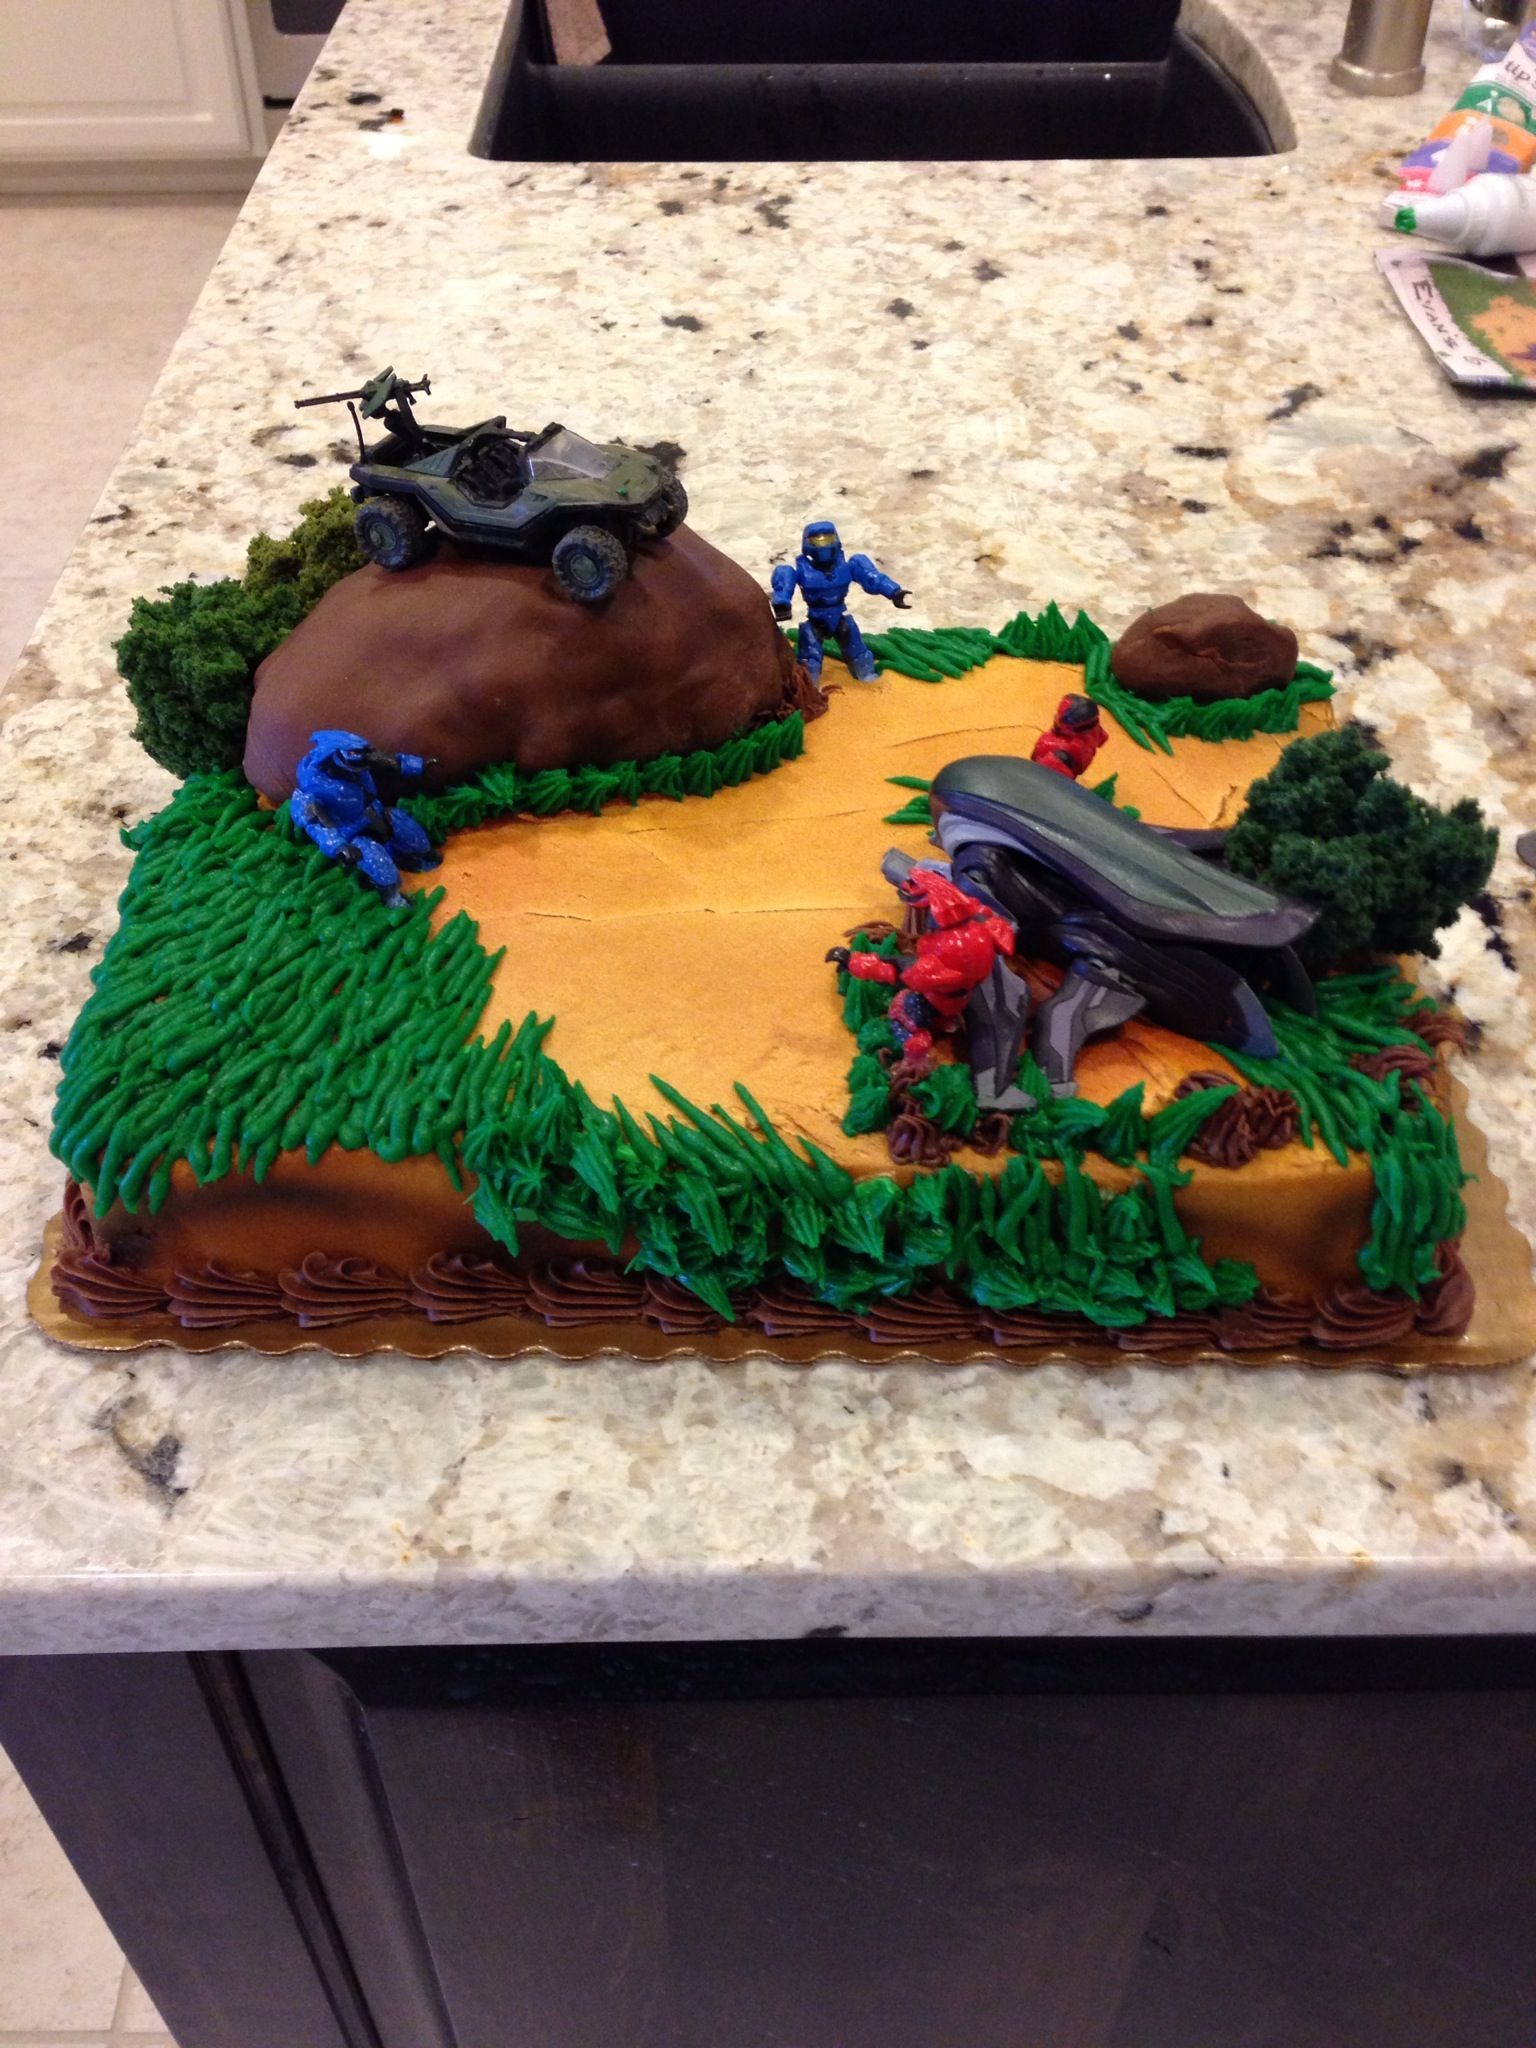 Stupendous Halo Themed Cake For Aidans 9Th Birthday Themed Cakes Halo Funny Birthday Cards Online Alyptdamsfinfo